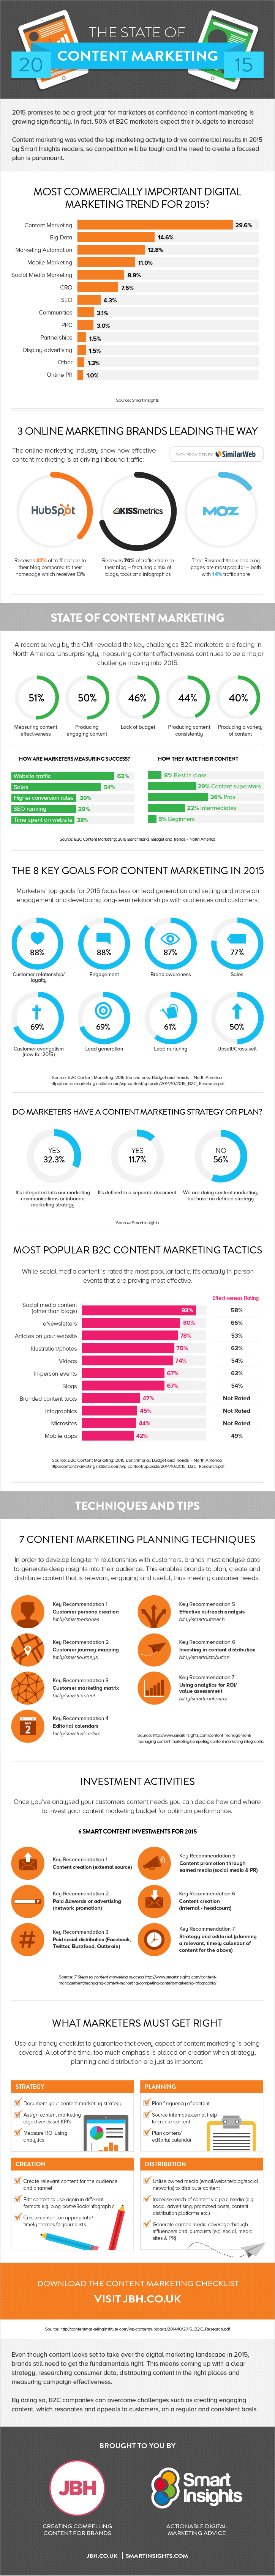 The State of #ContentMarketing 2015 - #Infographic